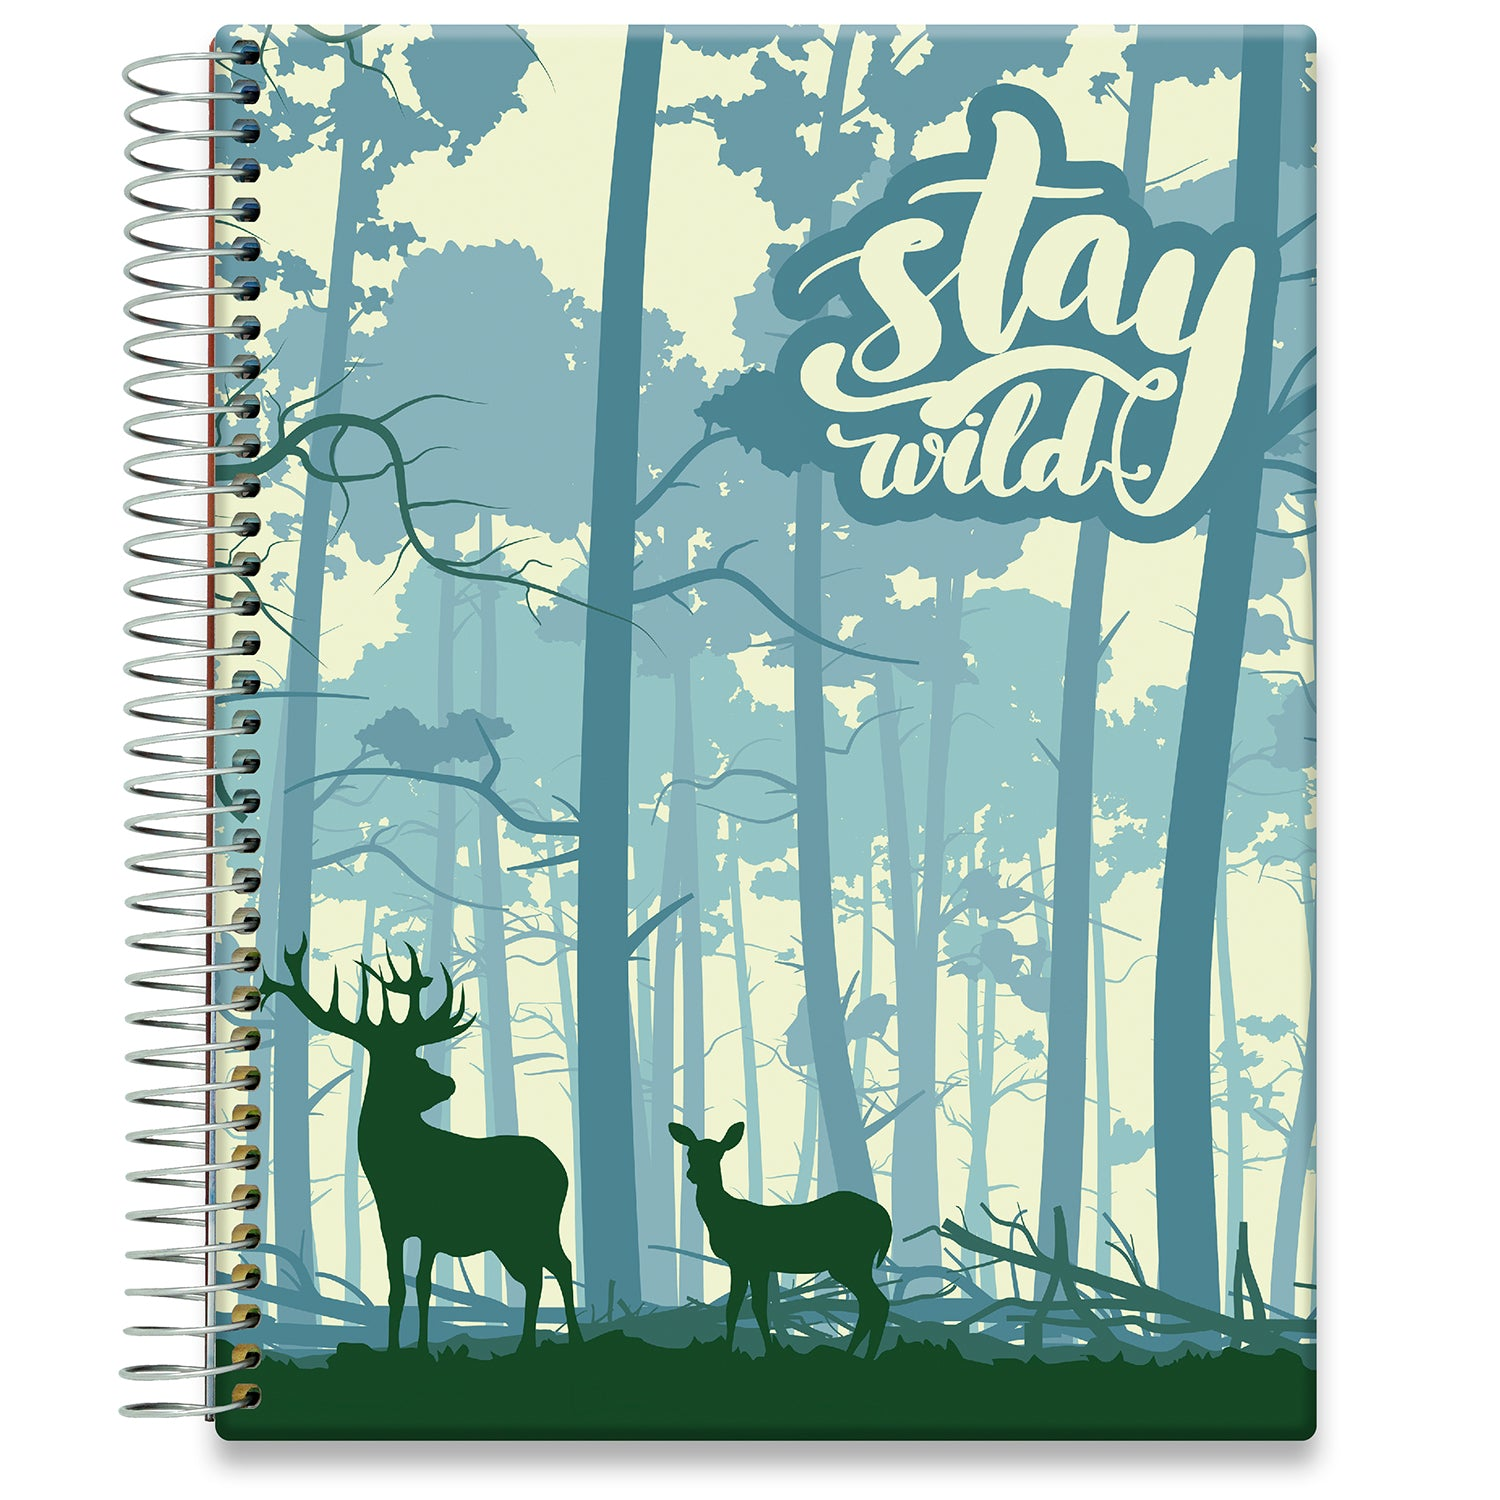 Planner 2021-2022 • April 2021 to June 2022 Academic Year • 8.5x11 Hardcover • Stay Wild Forest Cover